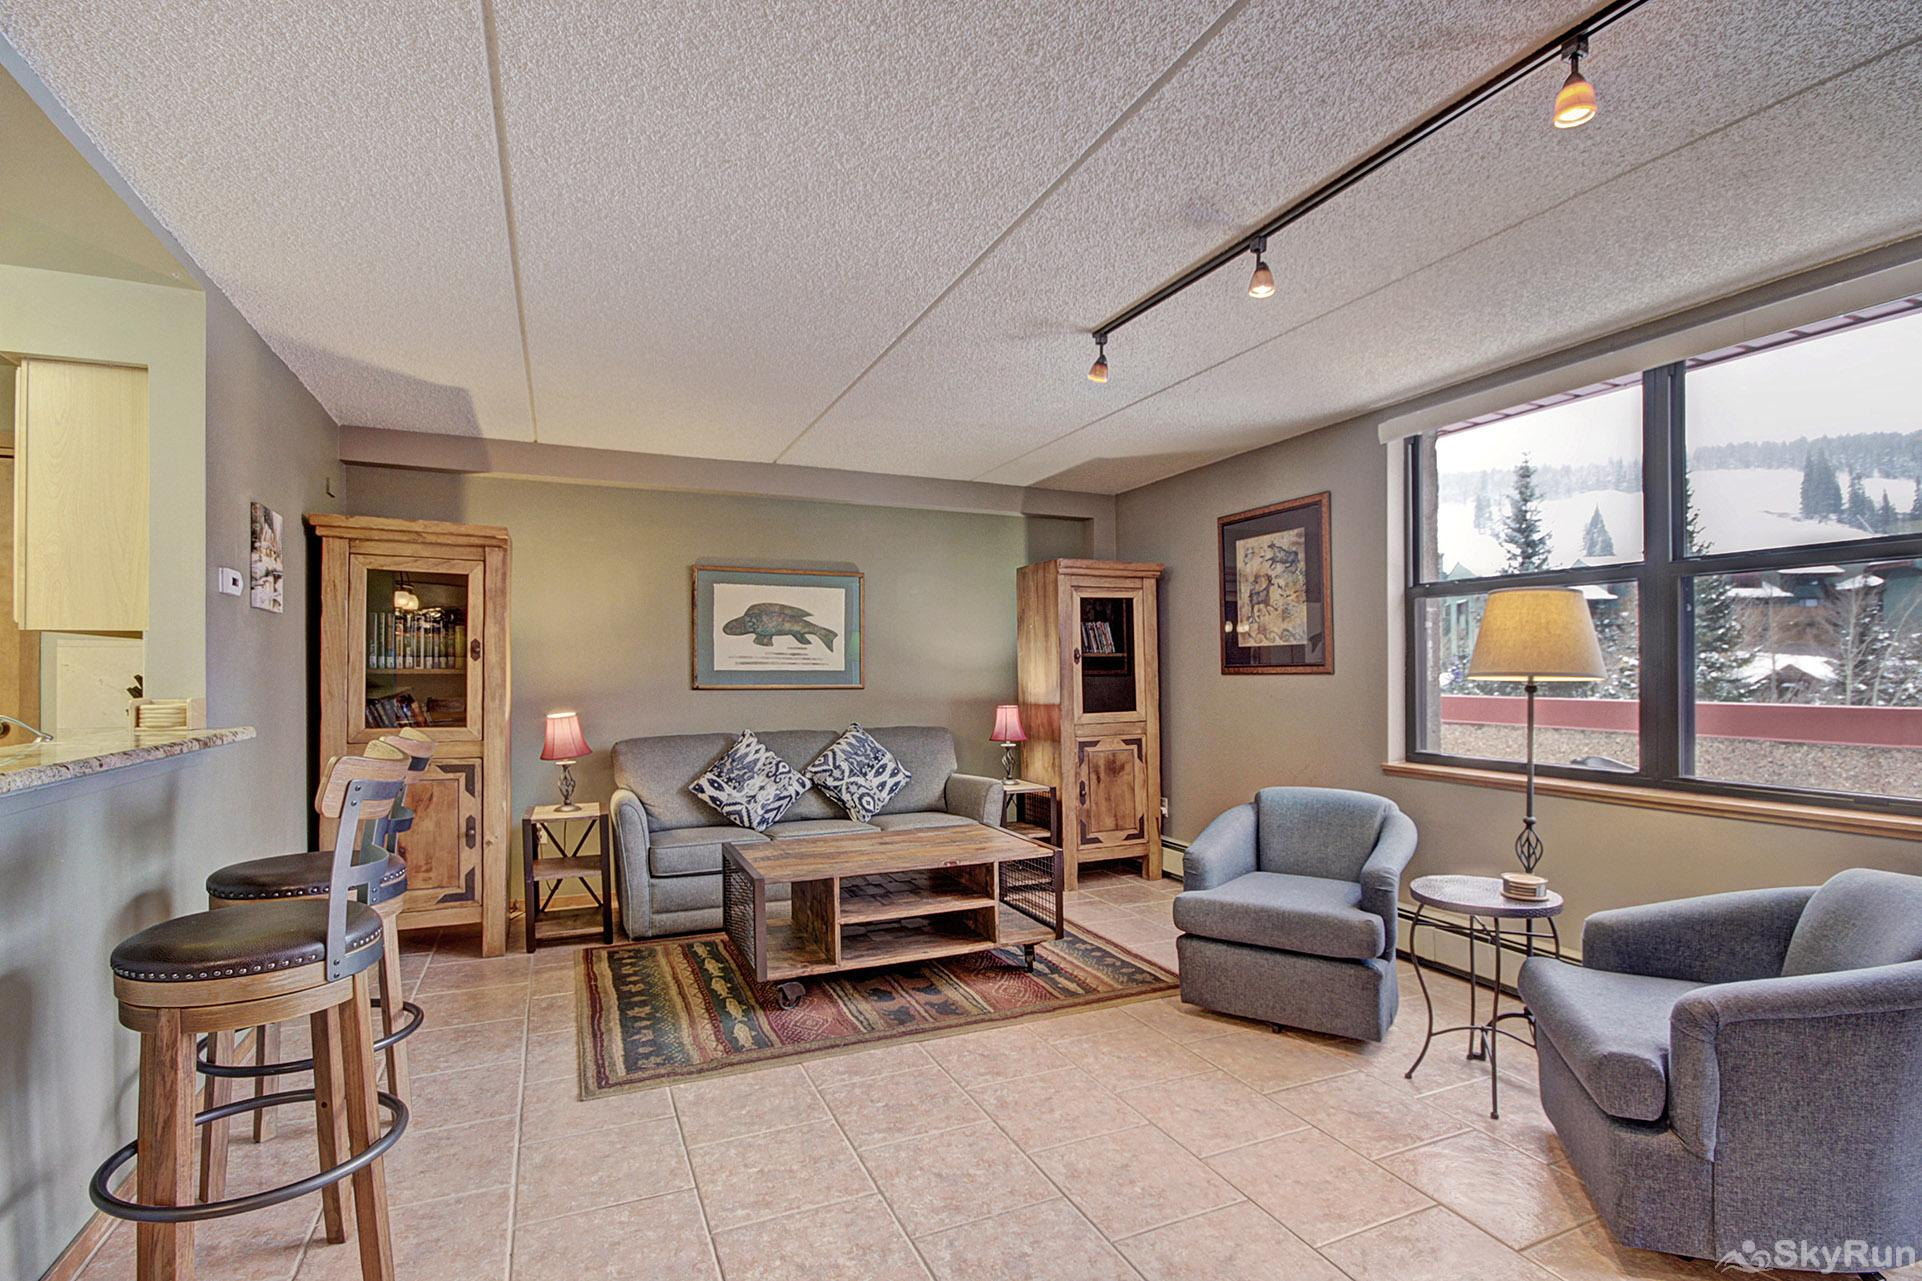 VS367 Village Square 1BR 1BA